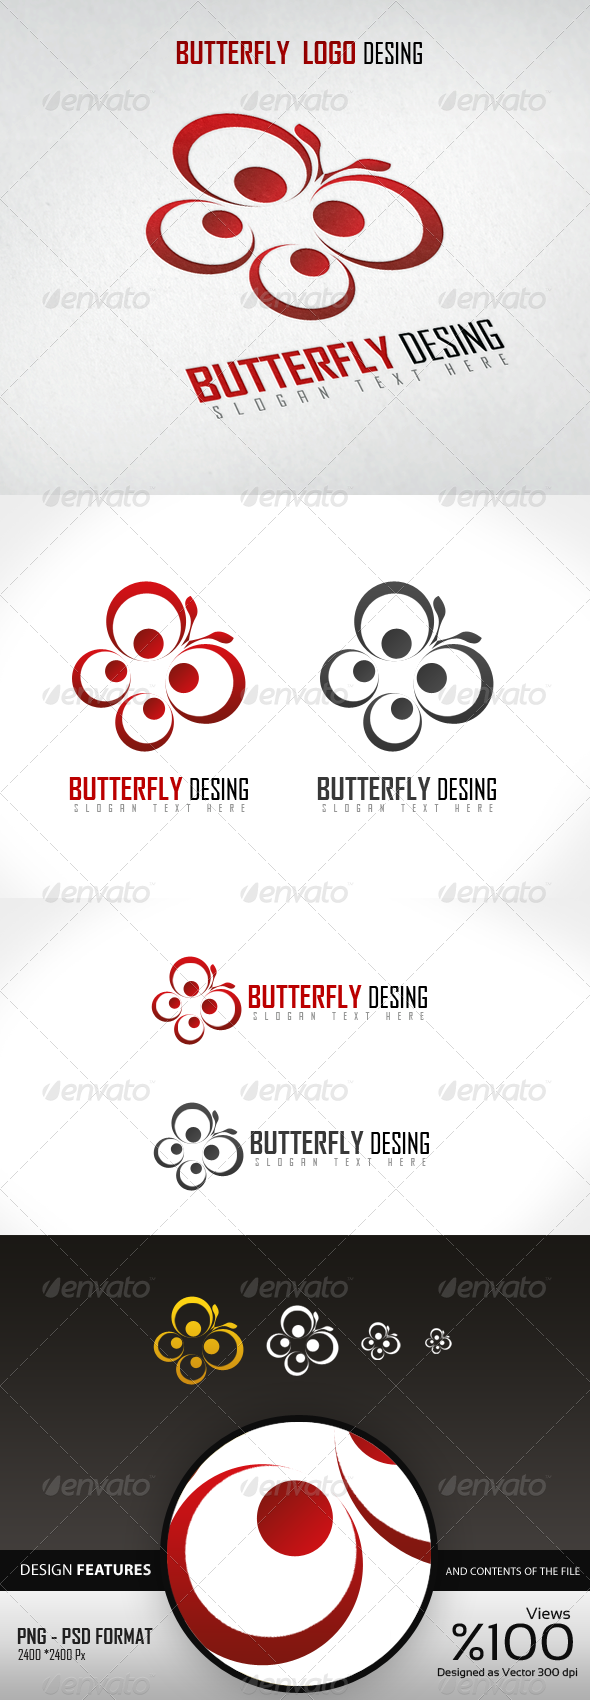 GraphicRiver Butterfly Logo Design 4093191